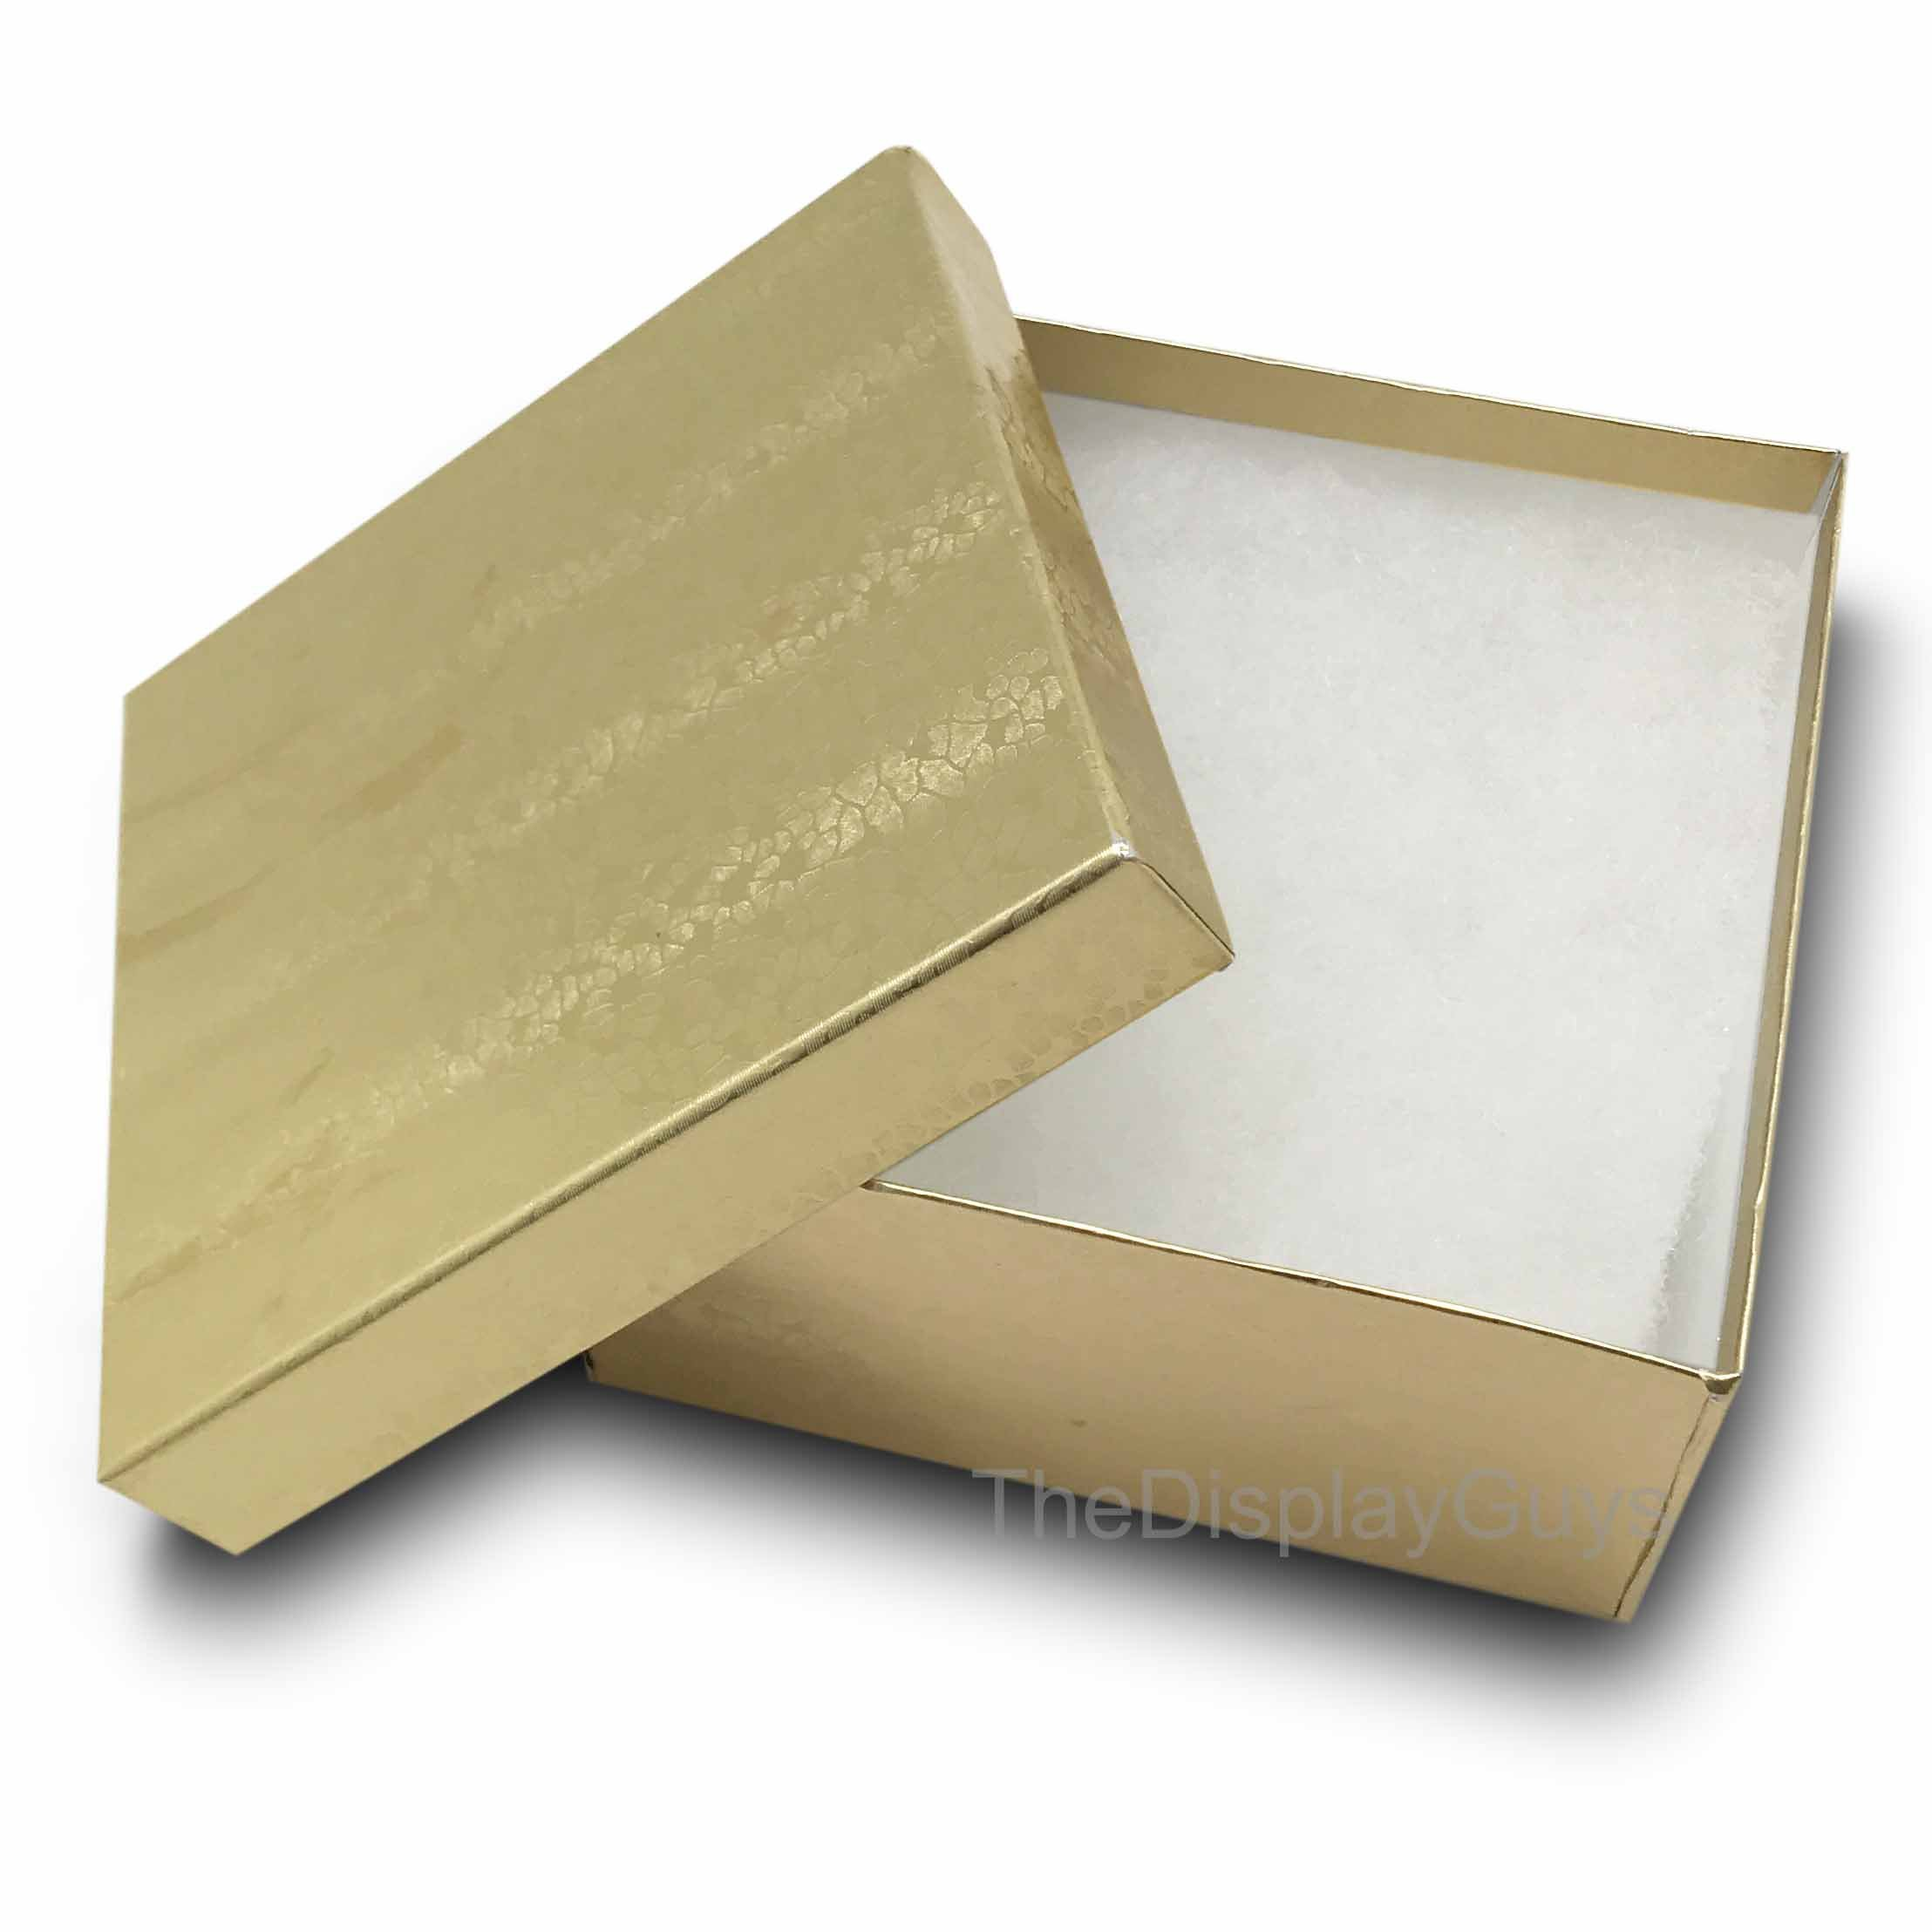 The Display Guys, Pack of 25 Gold 3 3/4x3 3/4x2 inches Cotton Filled Paper Jewelry Box Gift Display Case (#34)